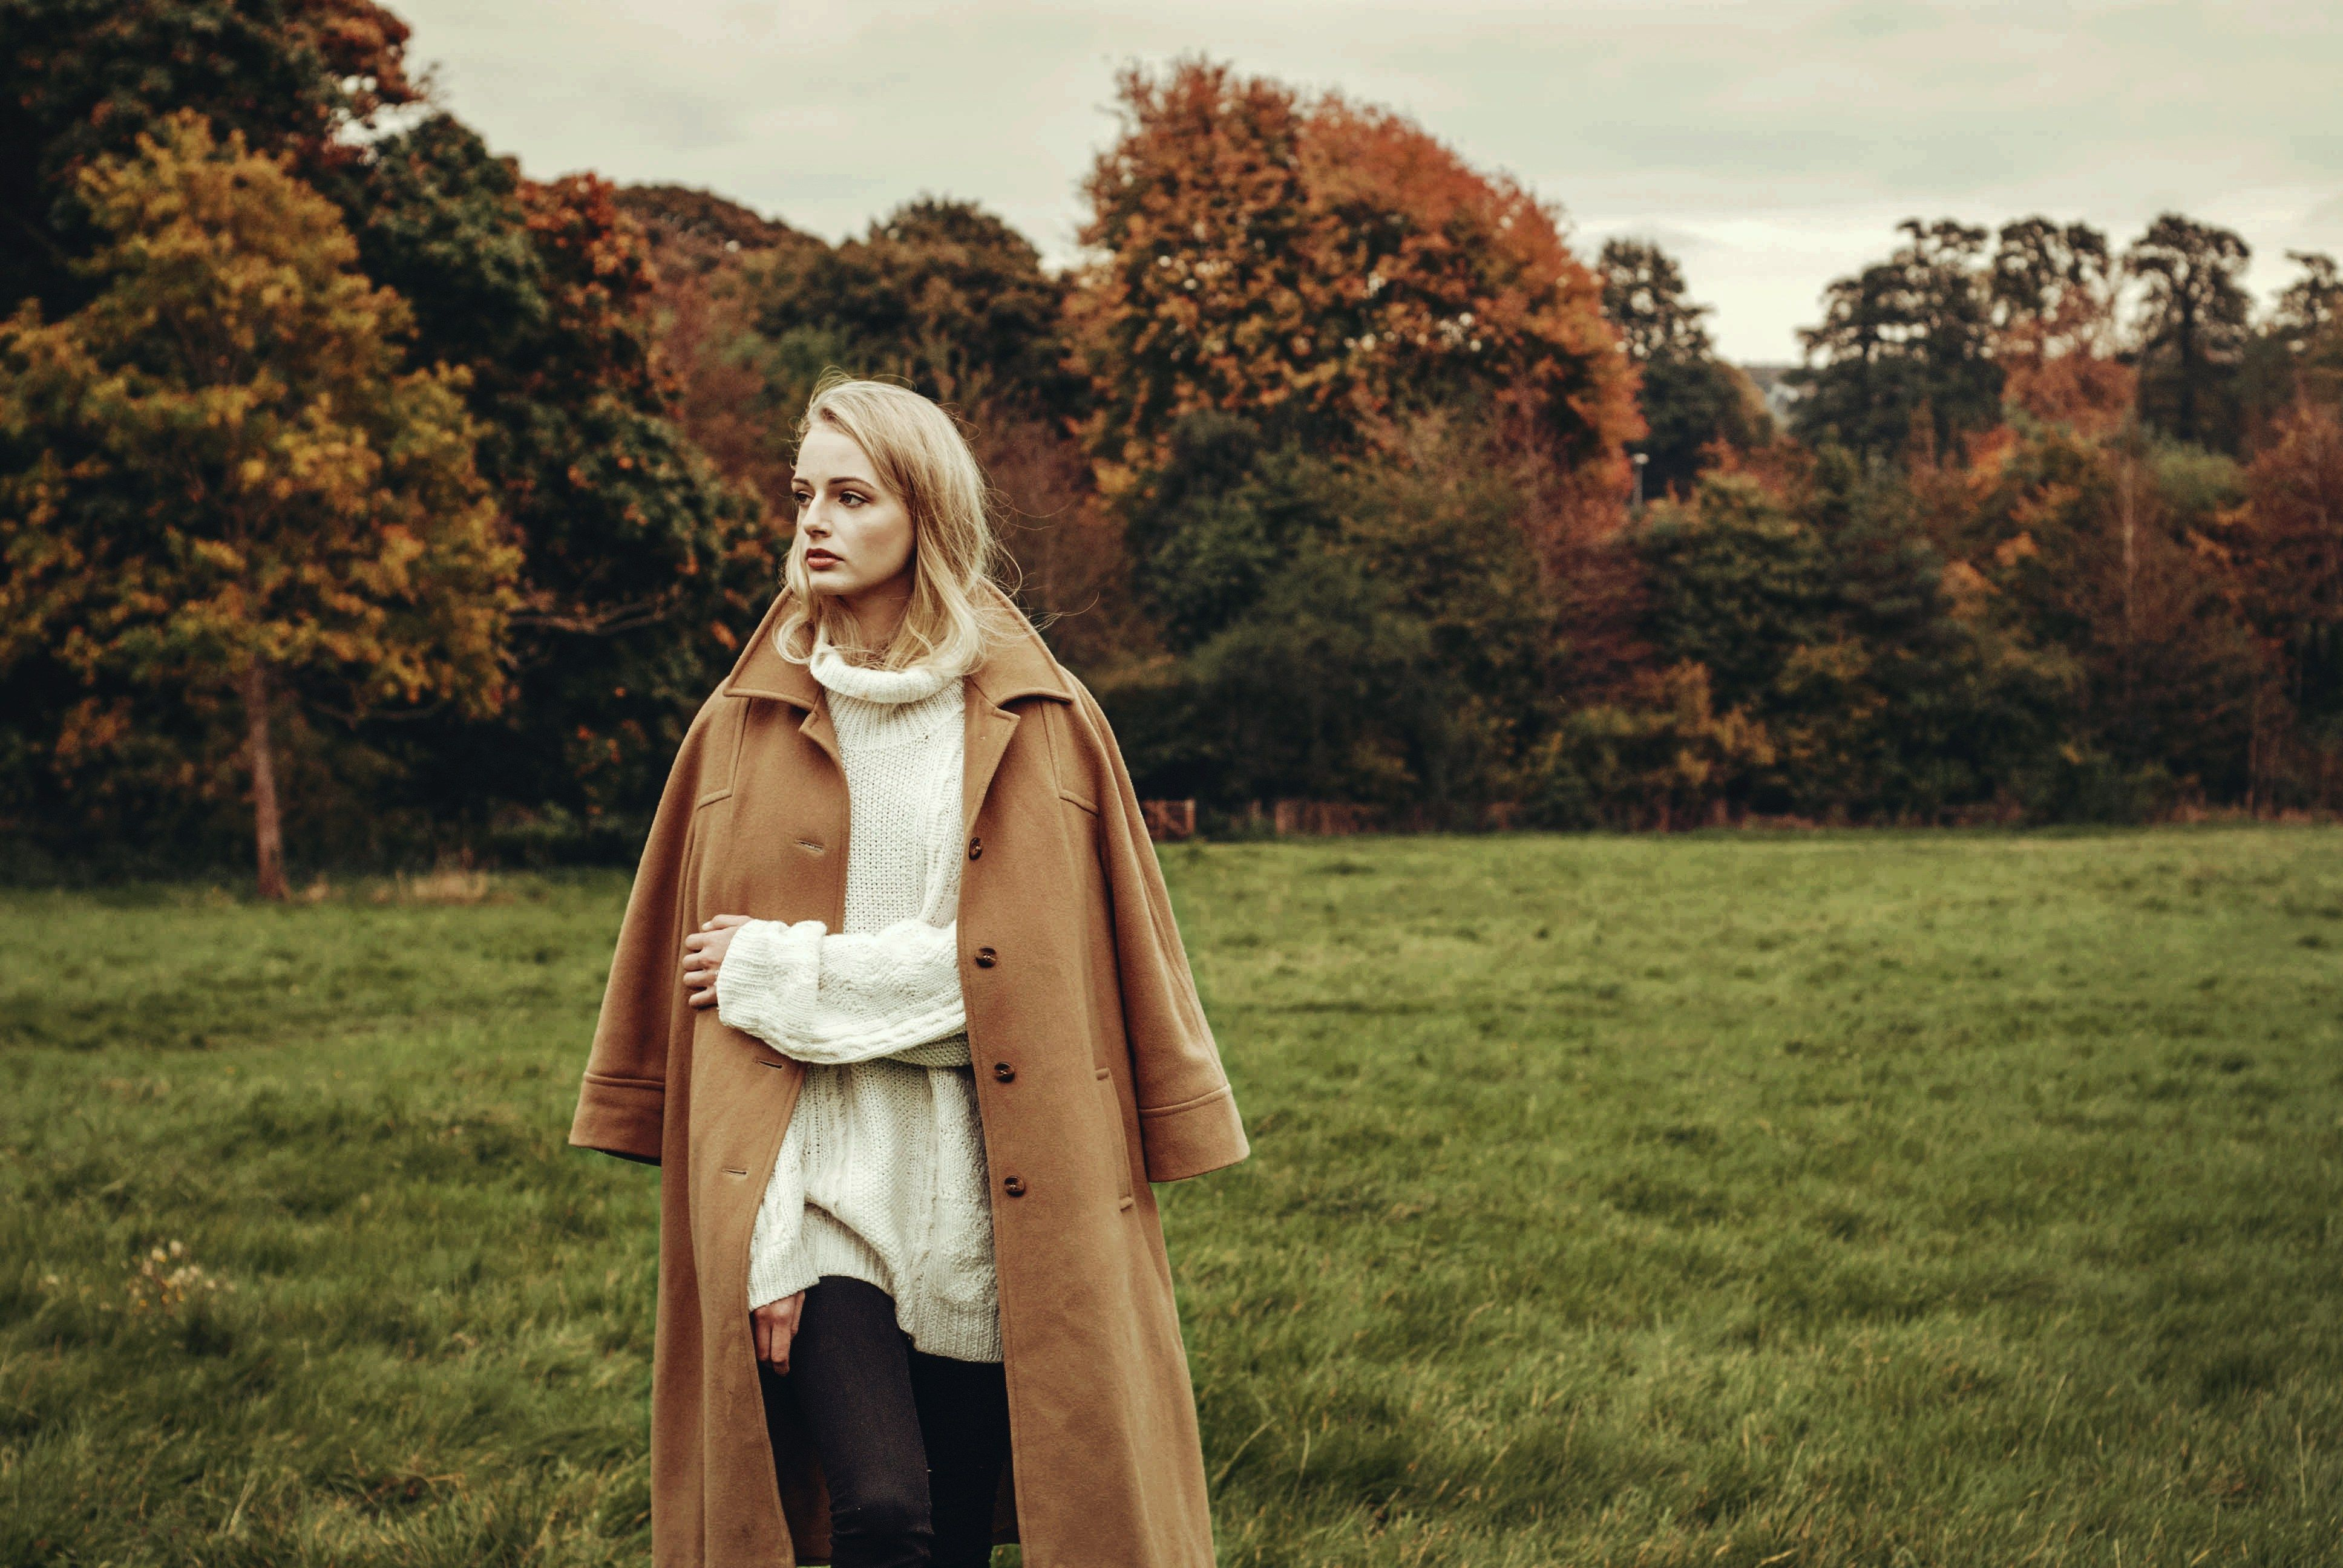 Iris Dinu - Look at the Cut, stylist, style, styling, woman, girl, fashion, autumn, winter, countryside, coat, cream, camel